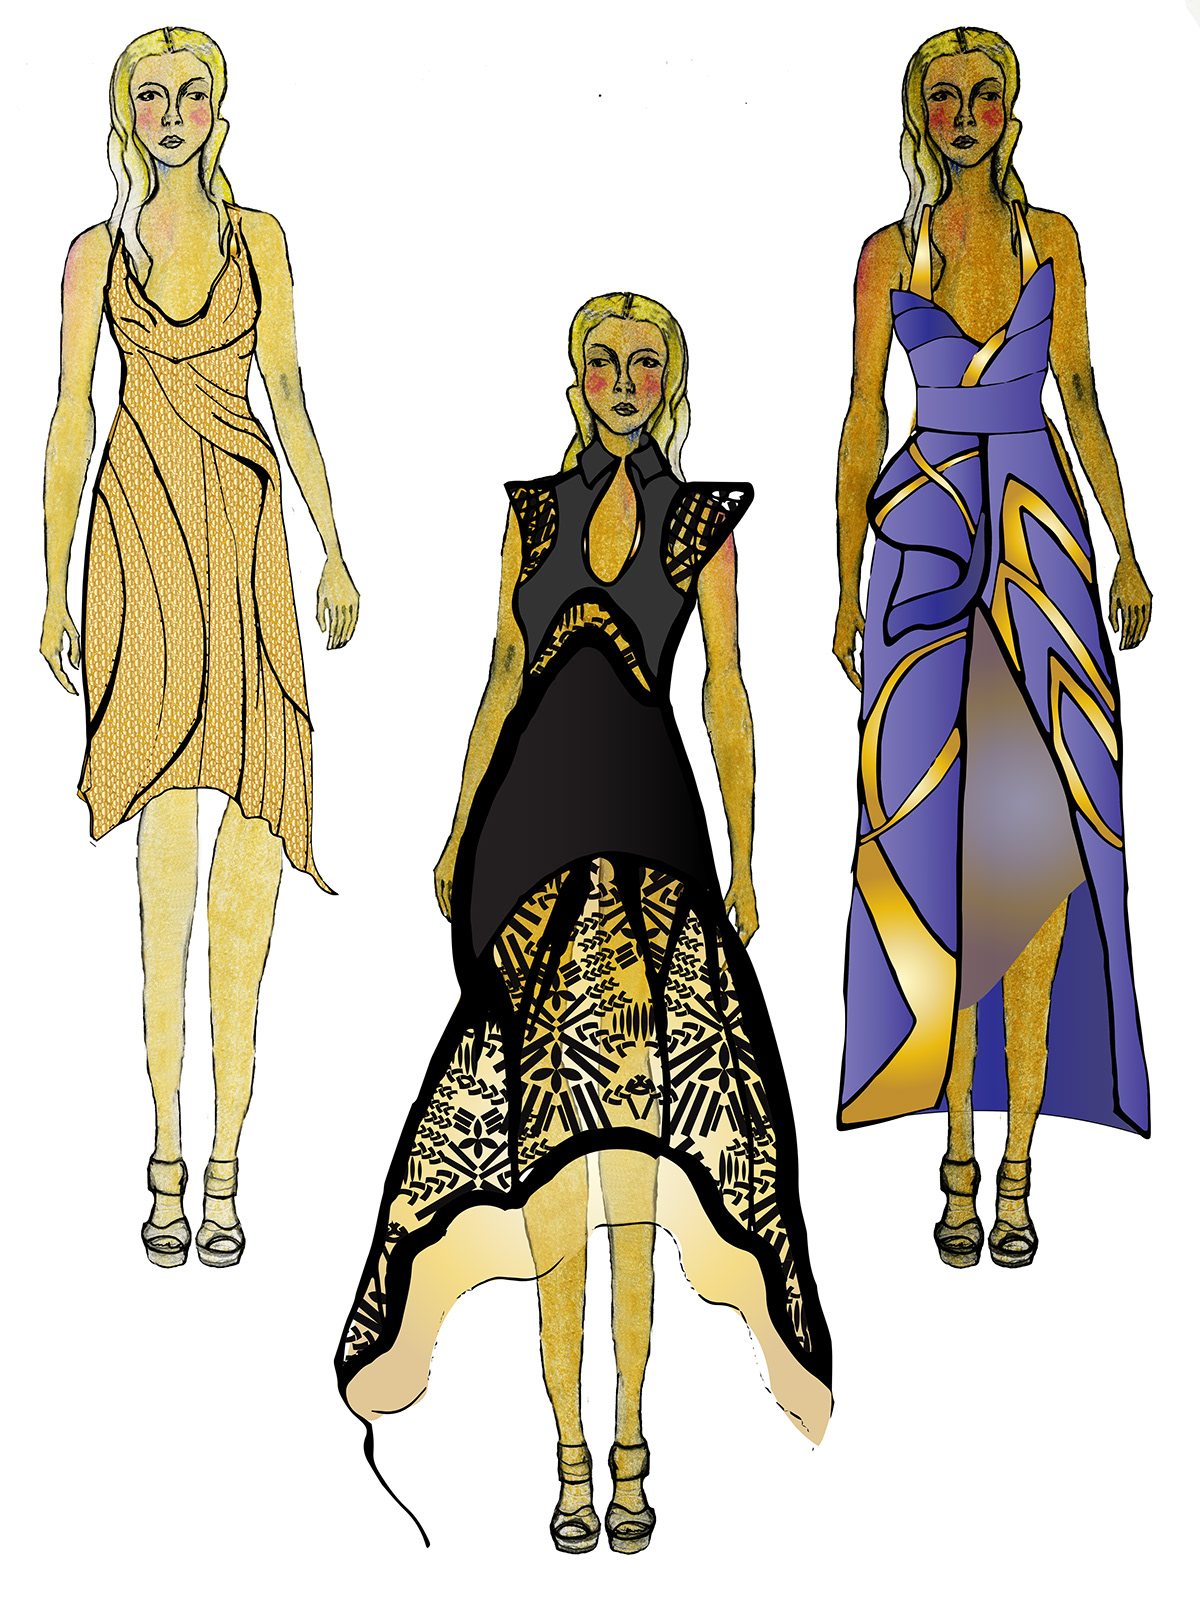 Fashion Design Concept For Zuhair Murad On Philau Portfolios